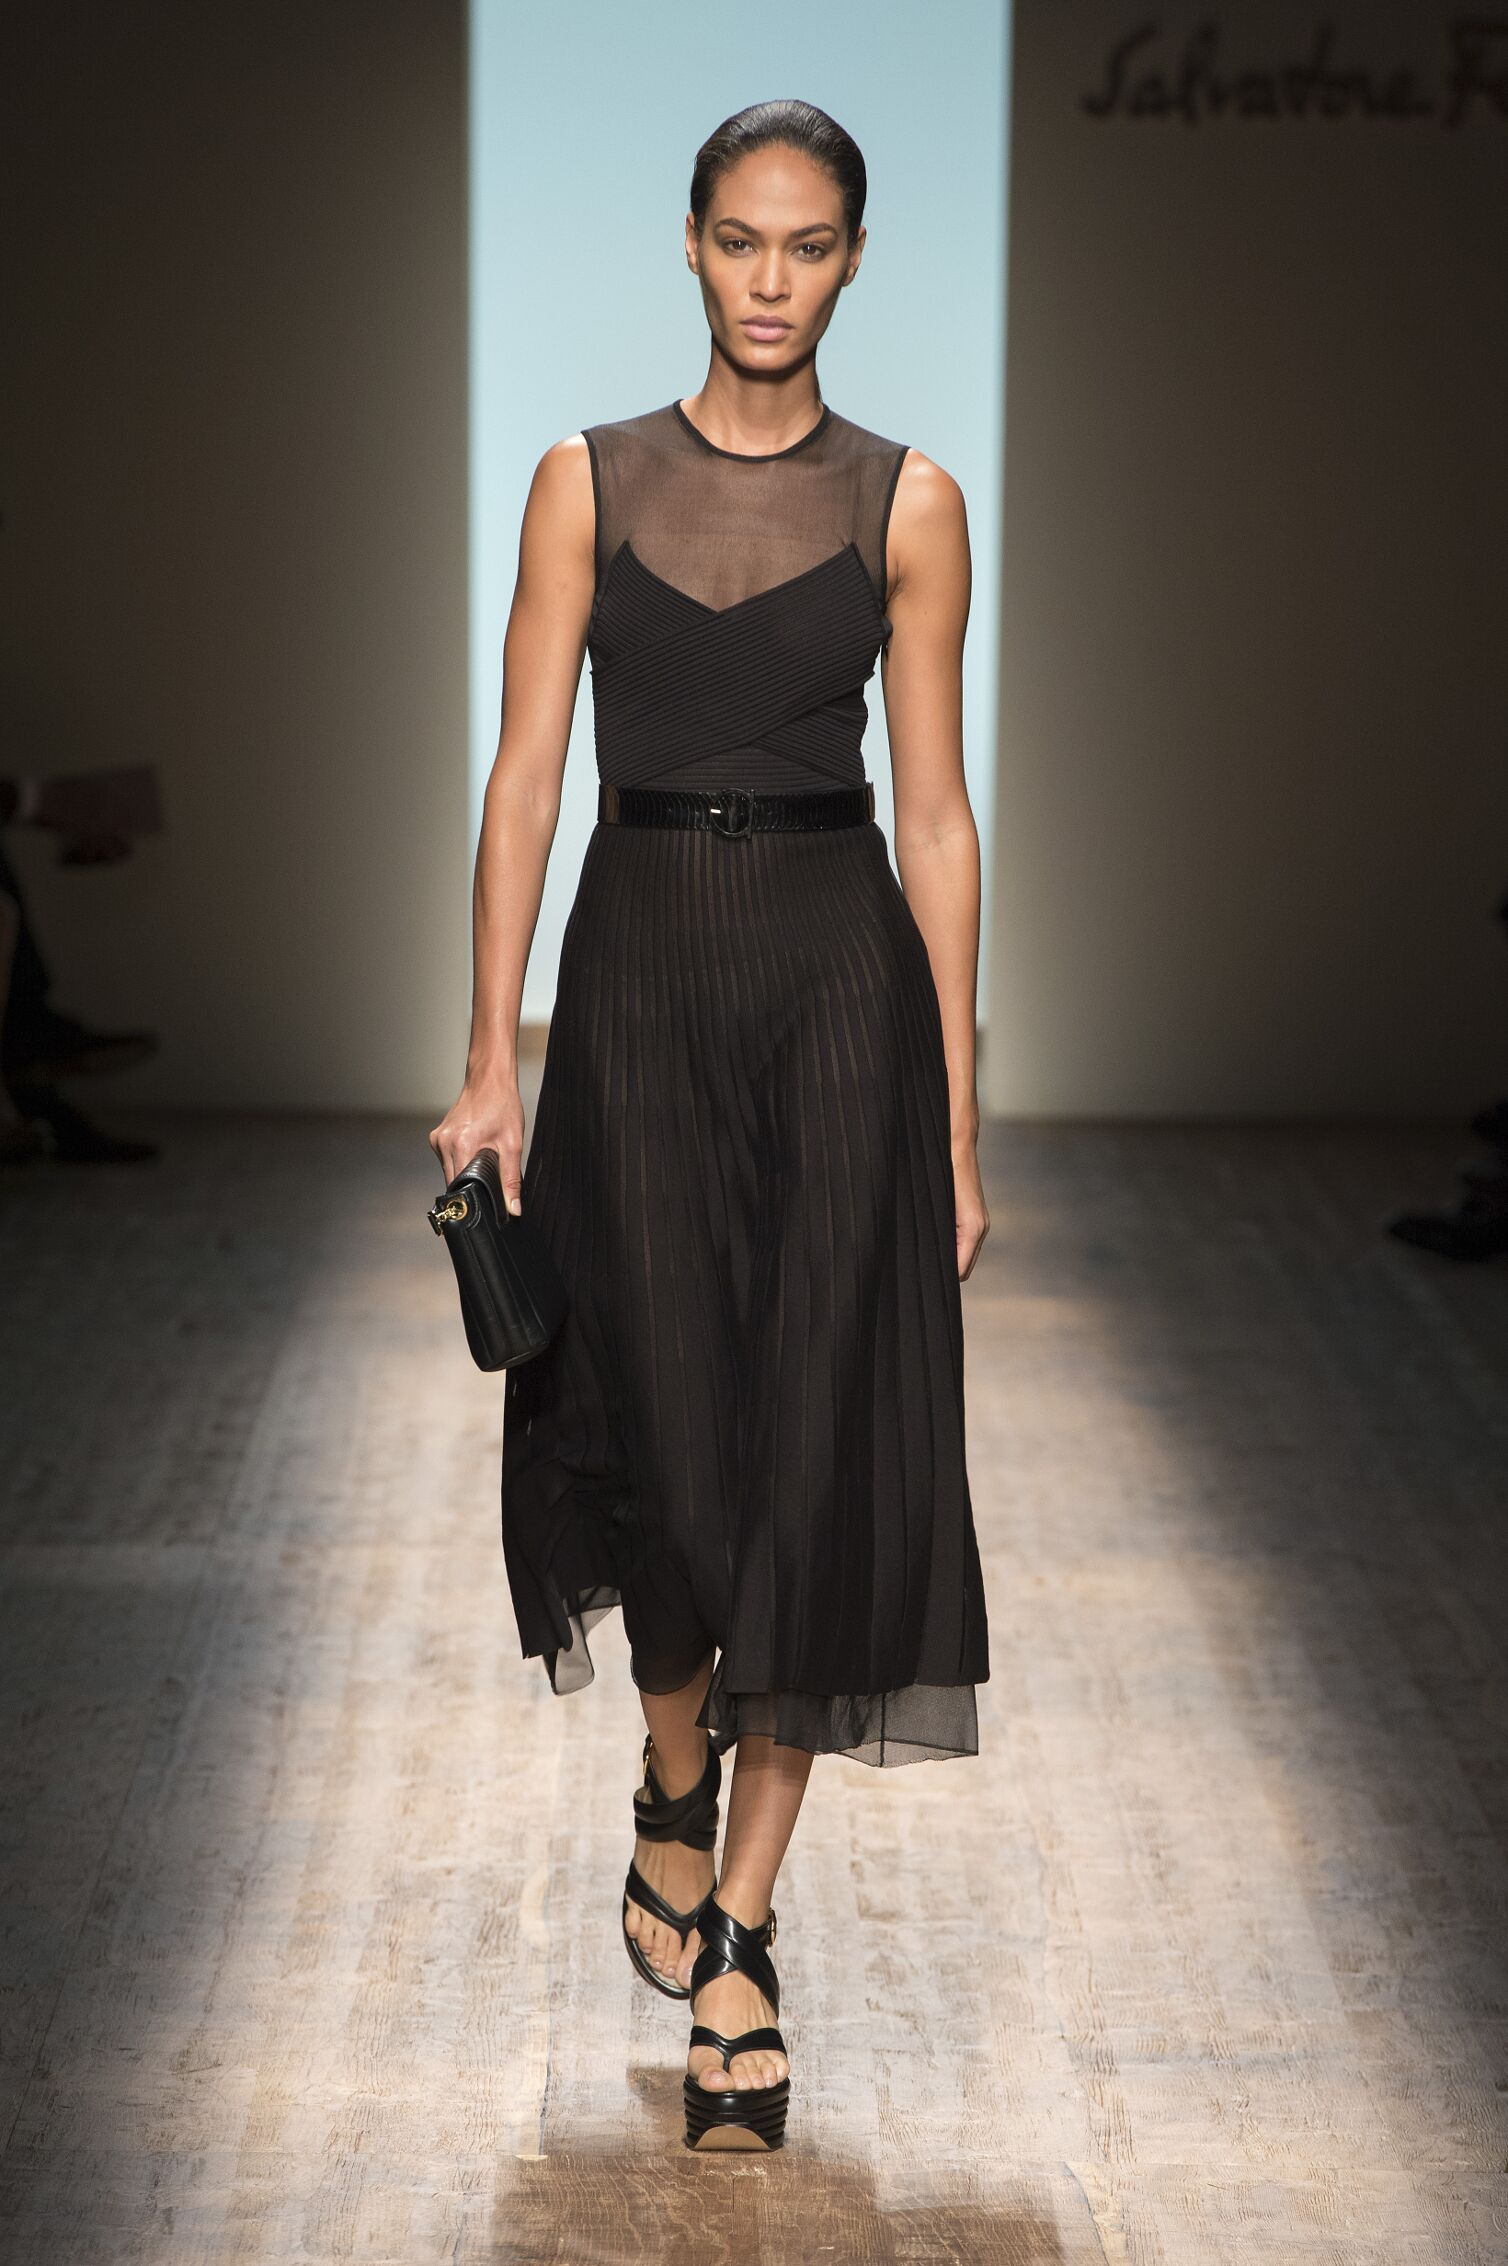 Catwalk Salvatore Ferragamo Woman Fashion Show Summer 2015